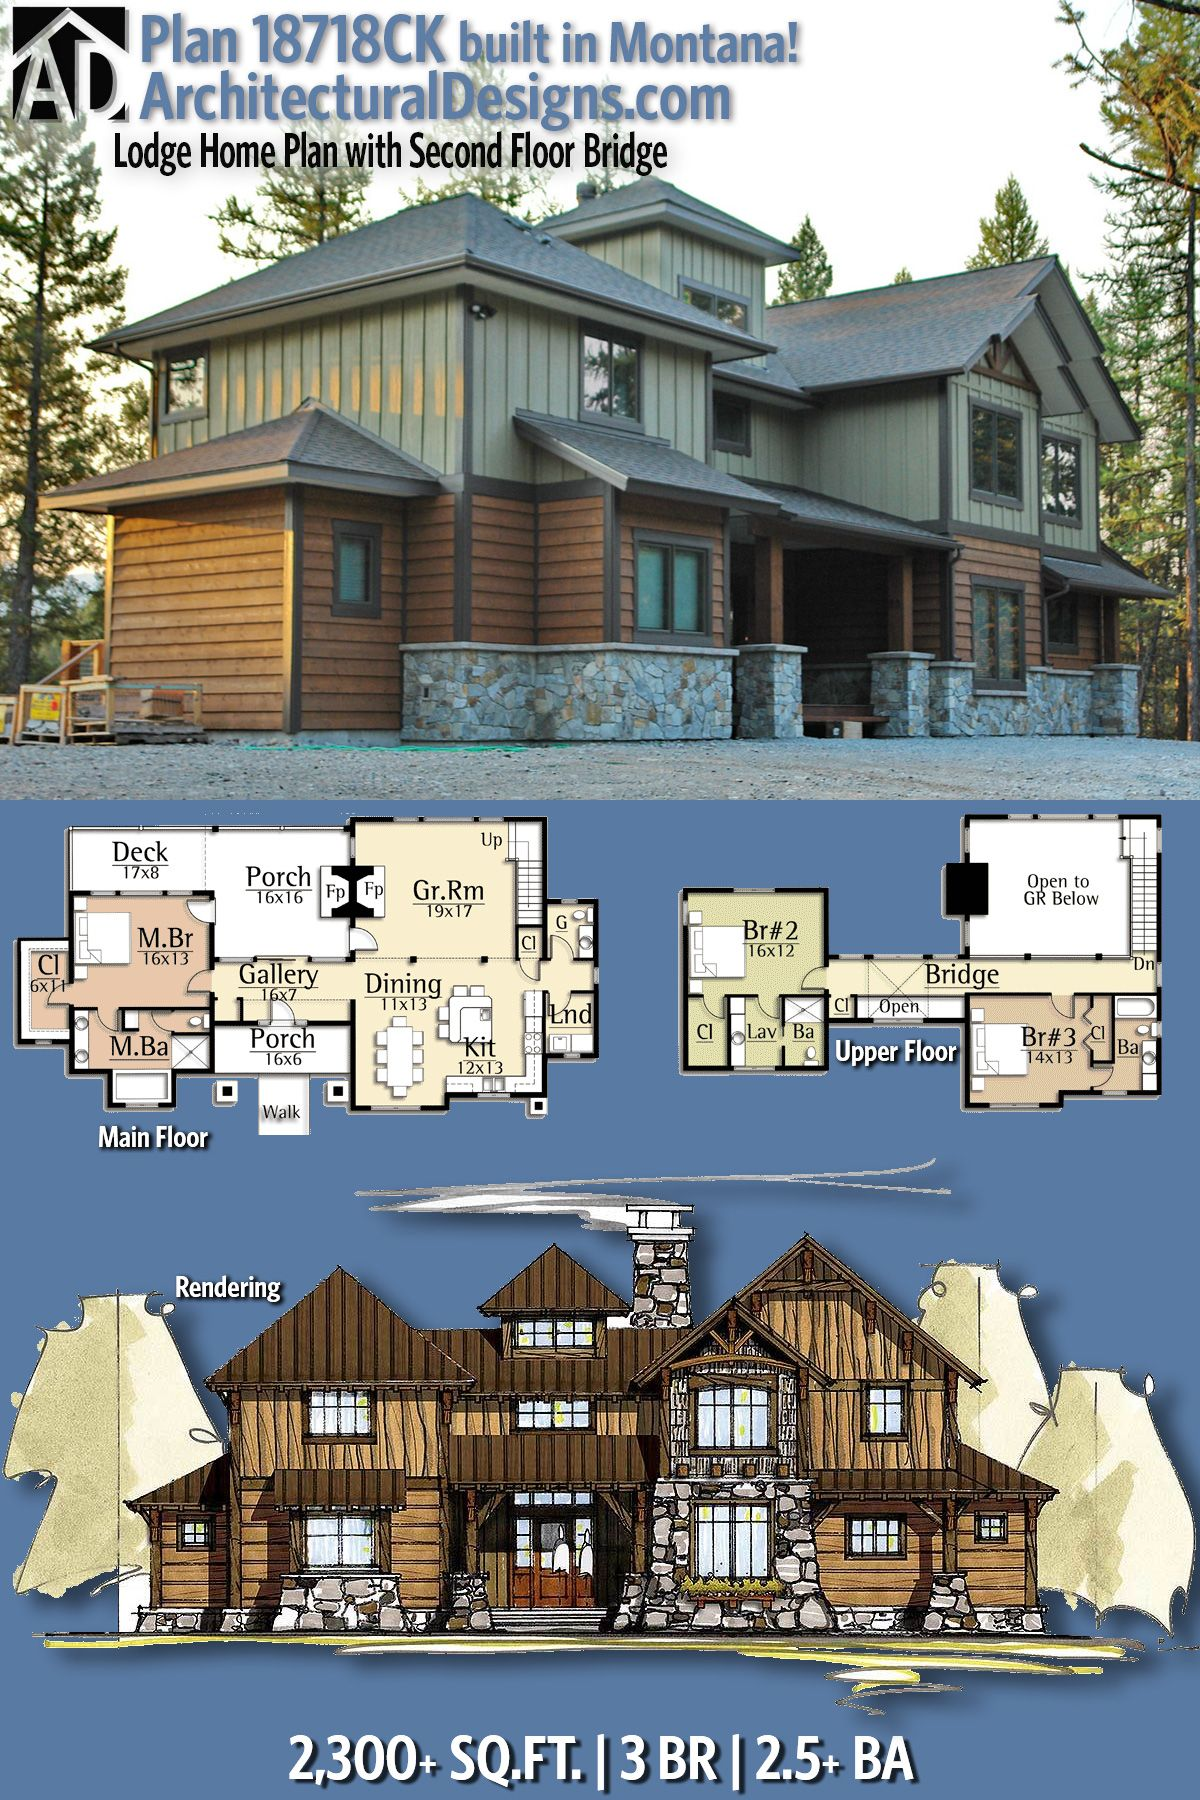 Architectural Designs Mountain House Plan 18718CK has